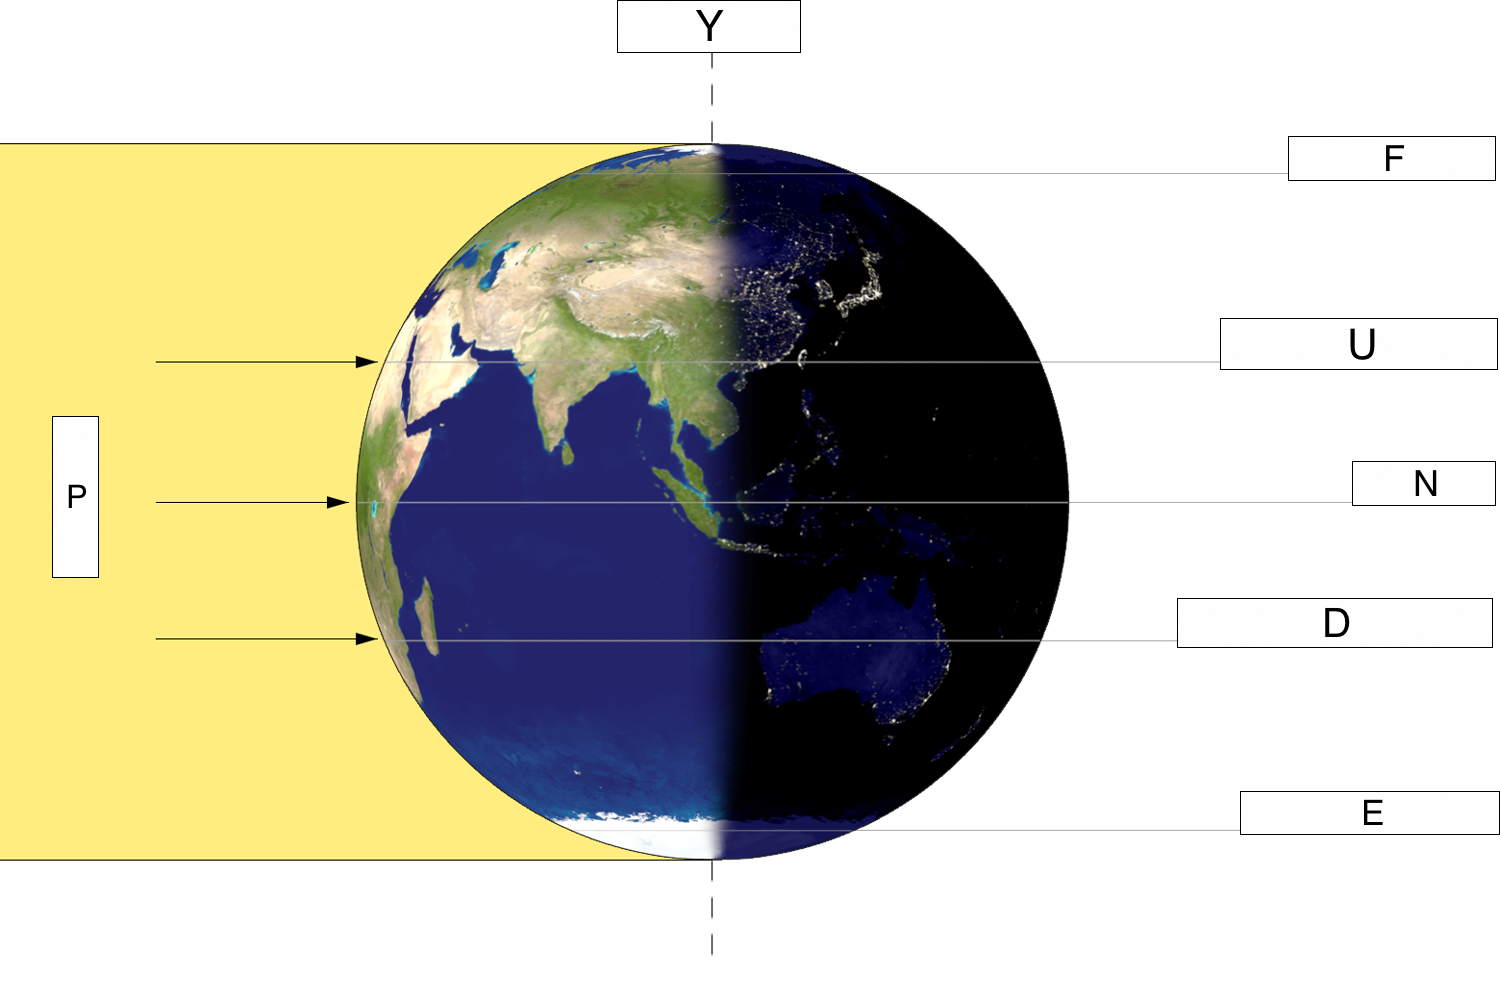 Rotation of earth lesson 0291 tqa explorer questionimage ccuart